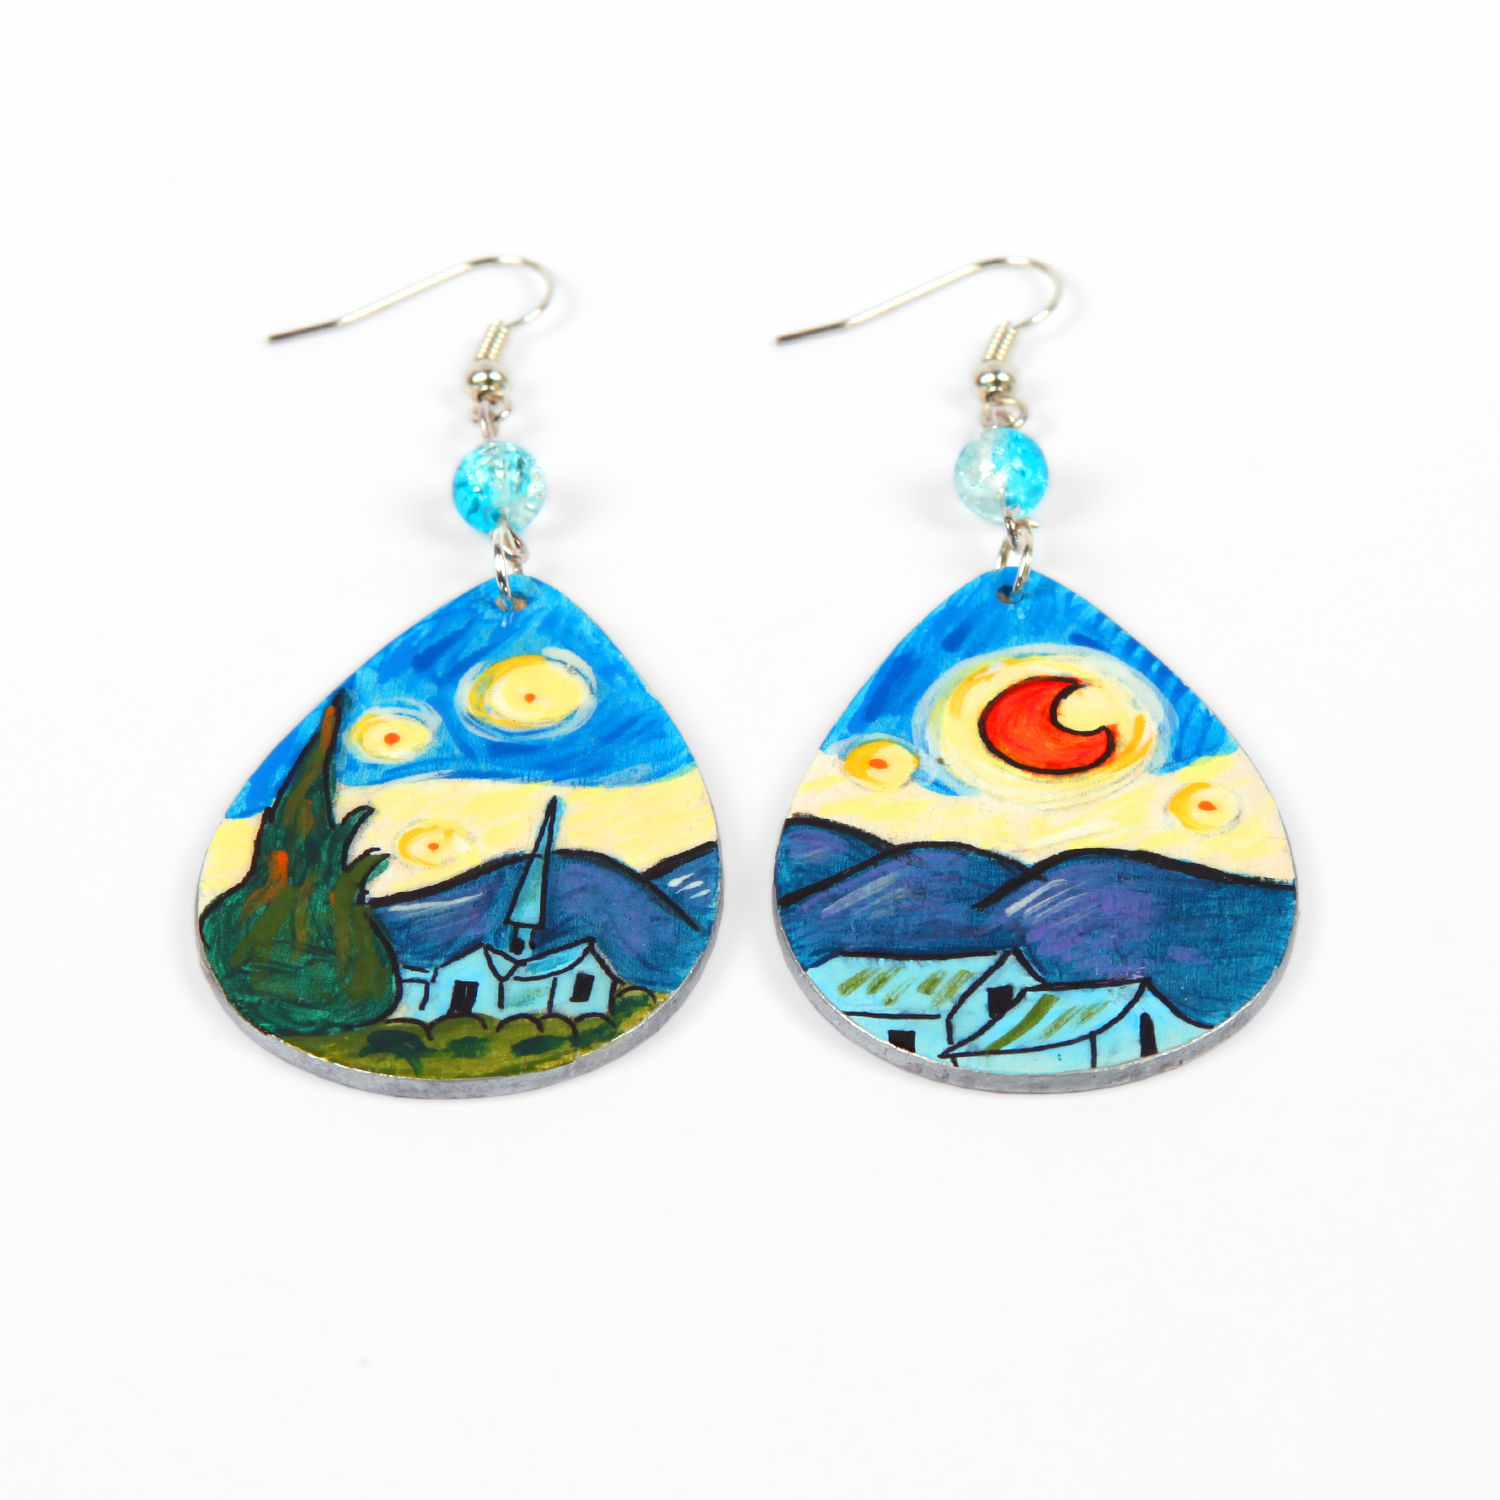 Hand painted earrings - The Starry Night by Van Gogh